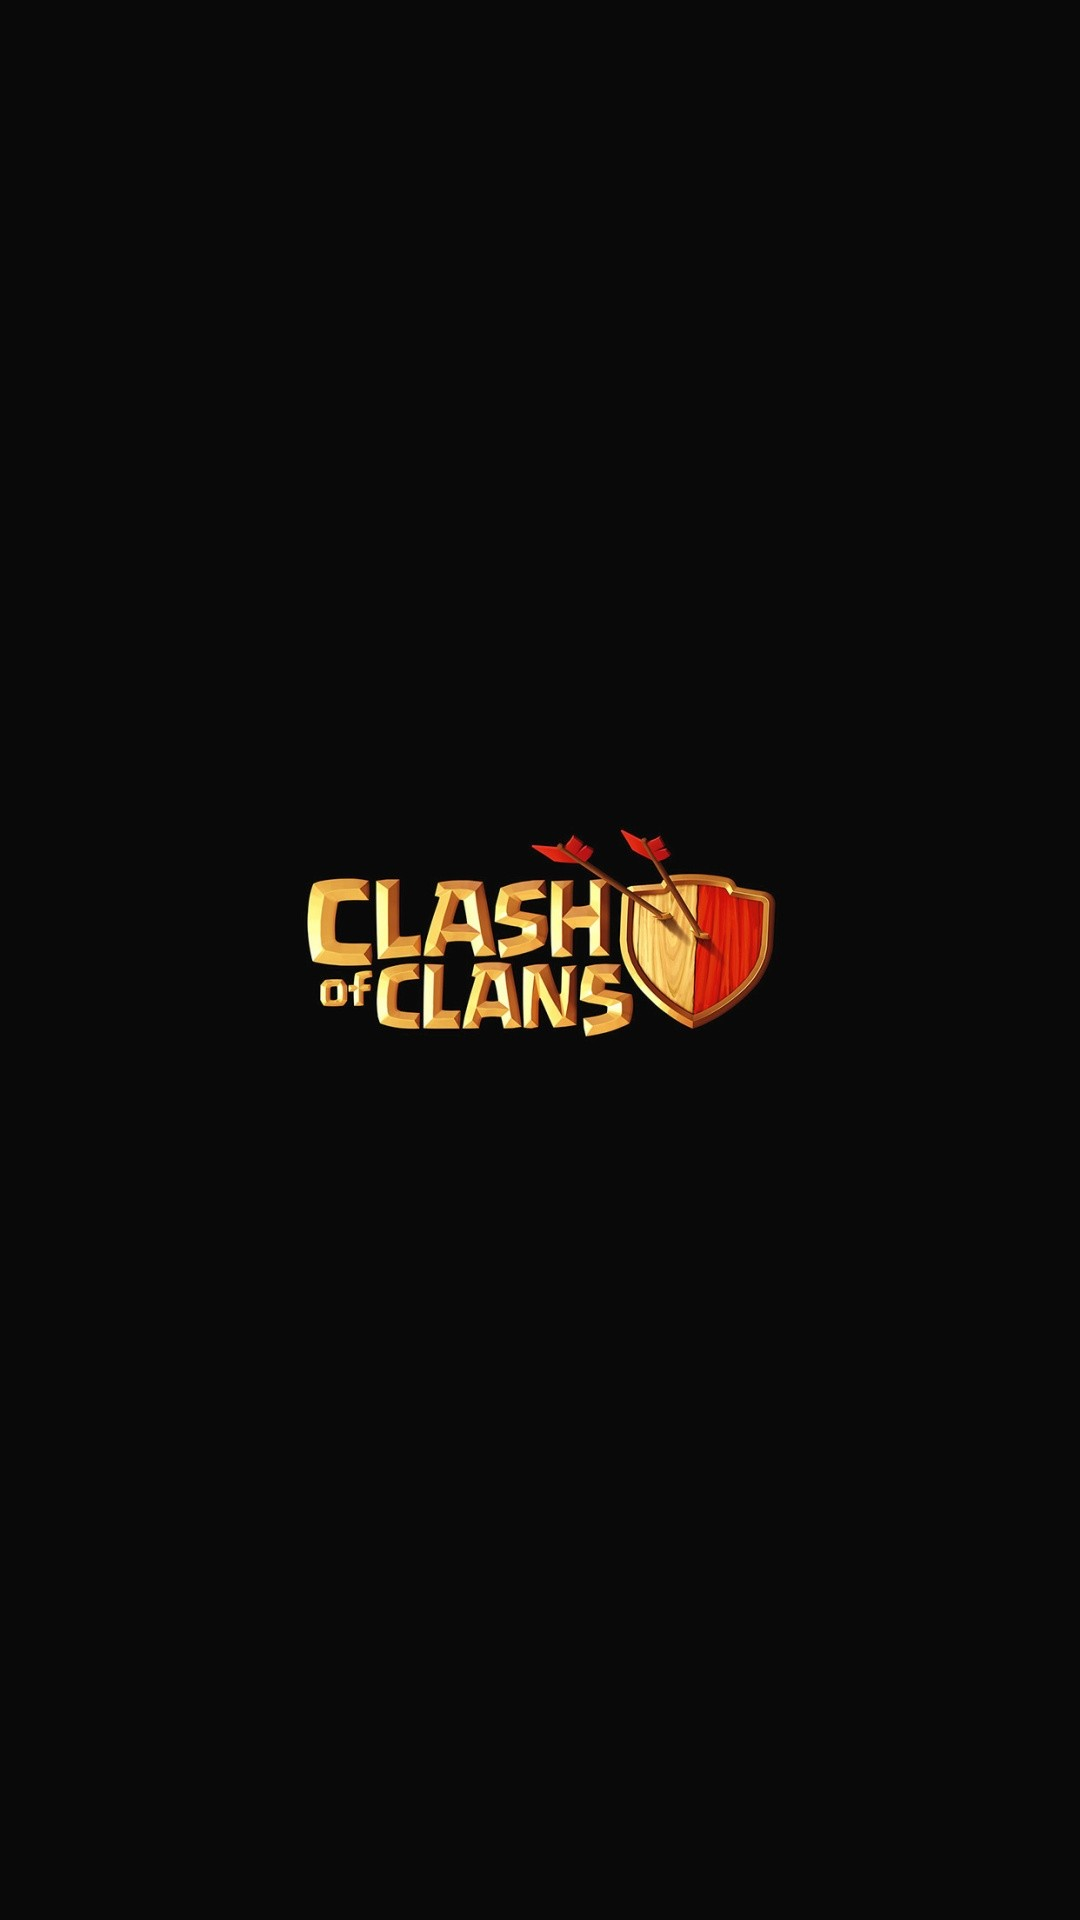 1080x1920 Clash Of Clans Game iPhone 6+ HD Wallpaper - http://freebestpicture.